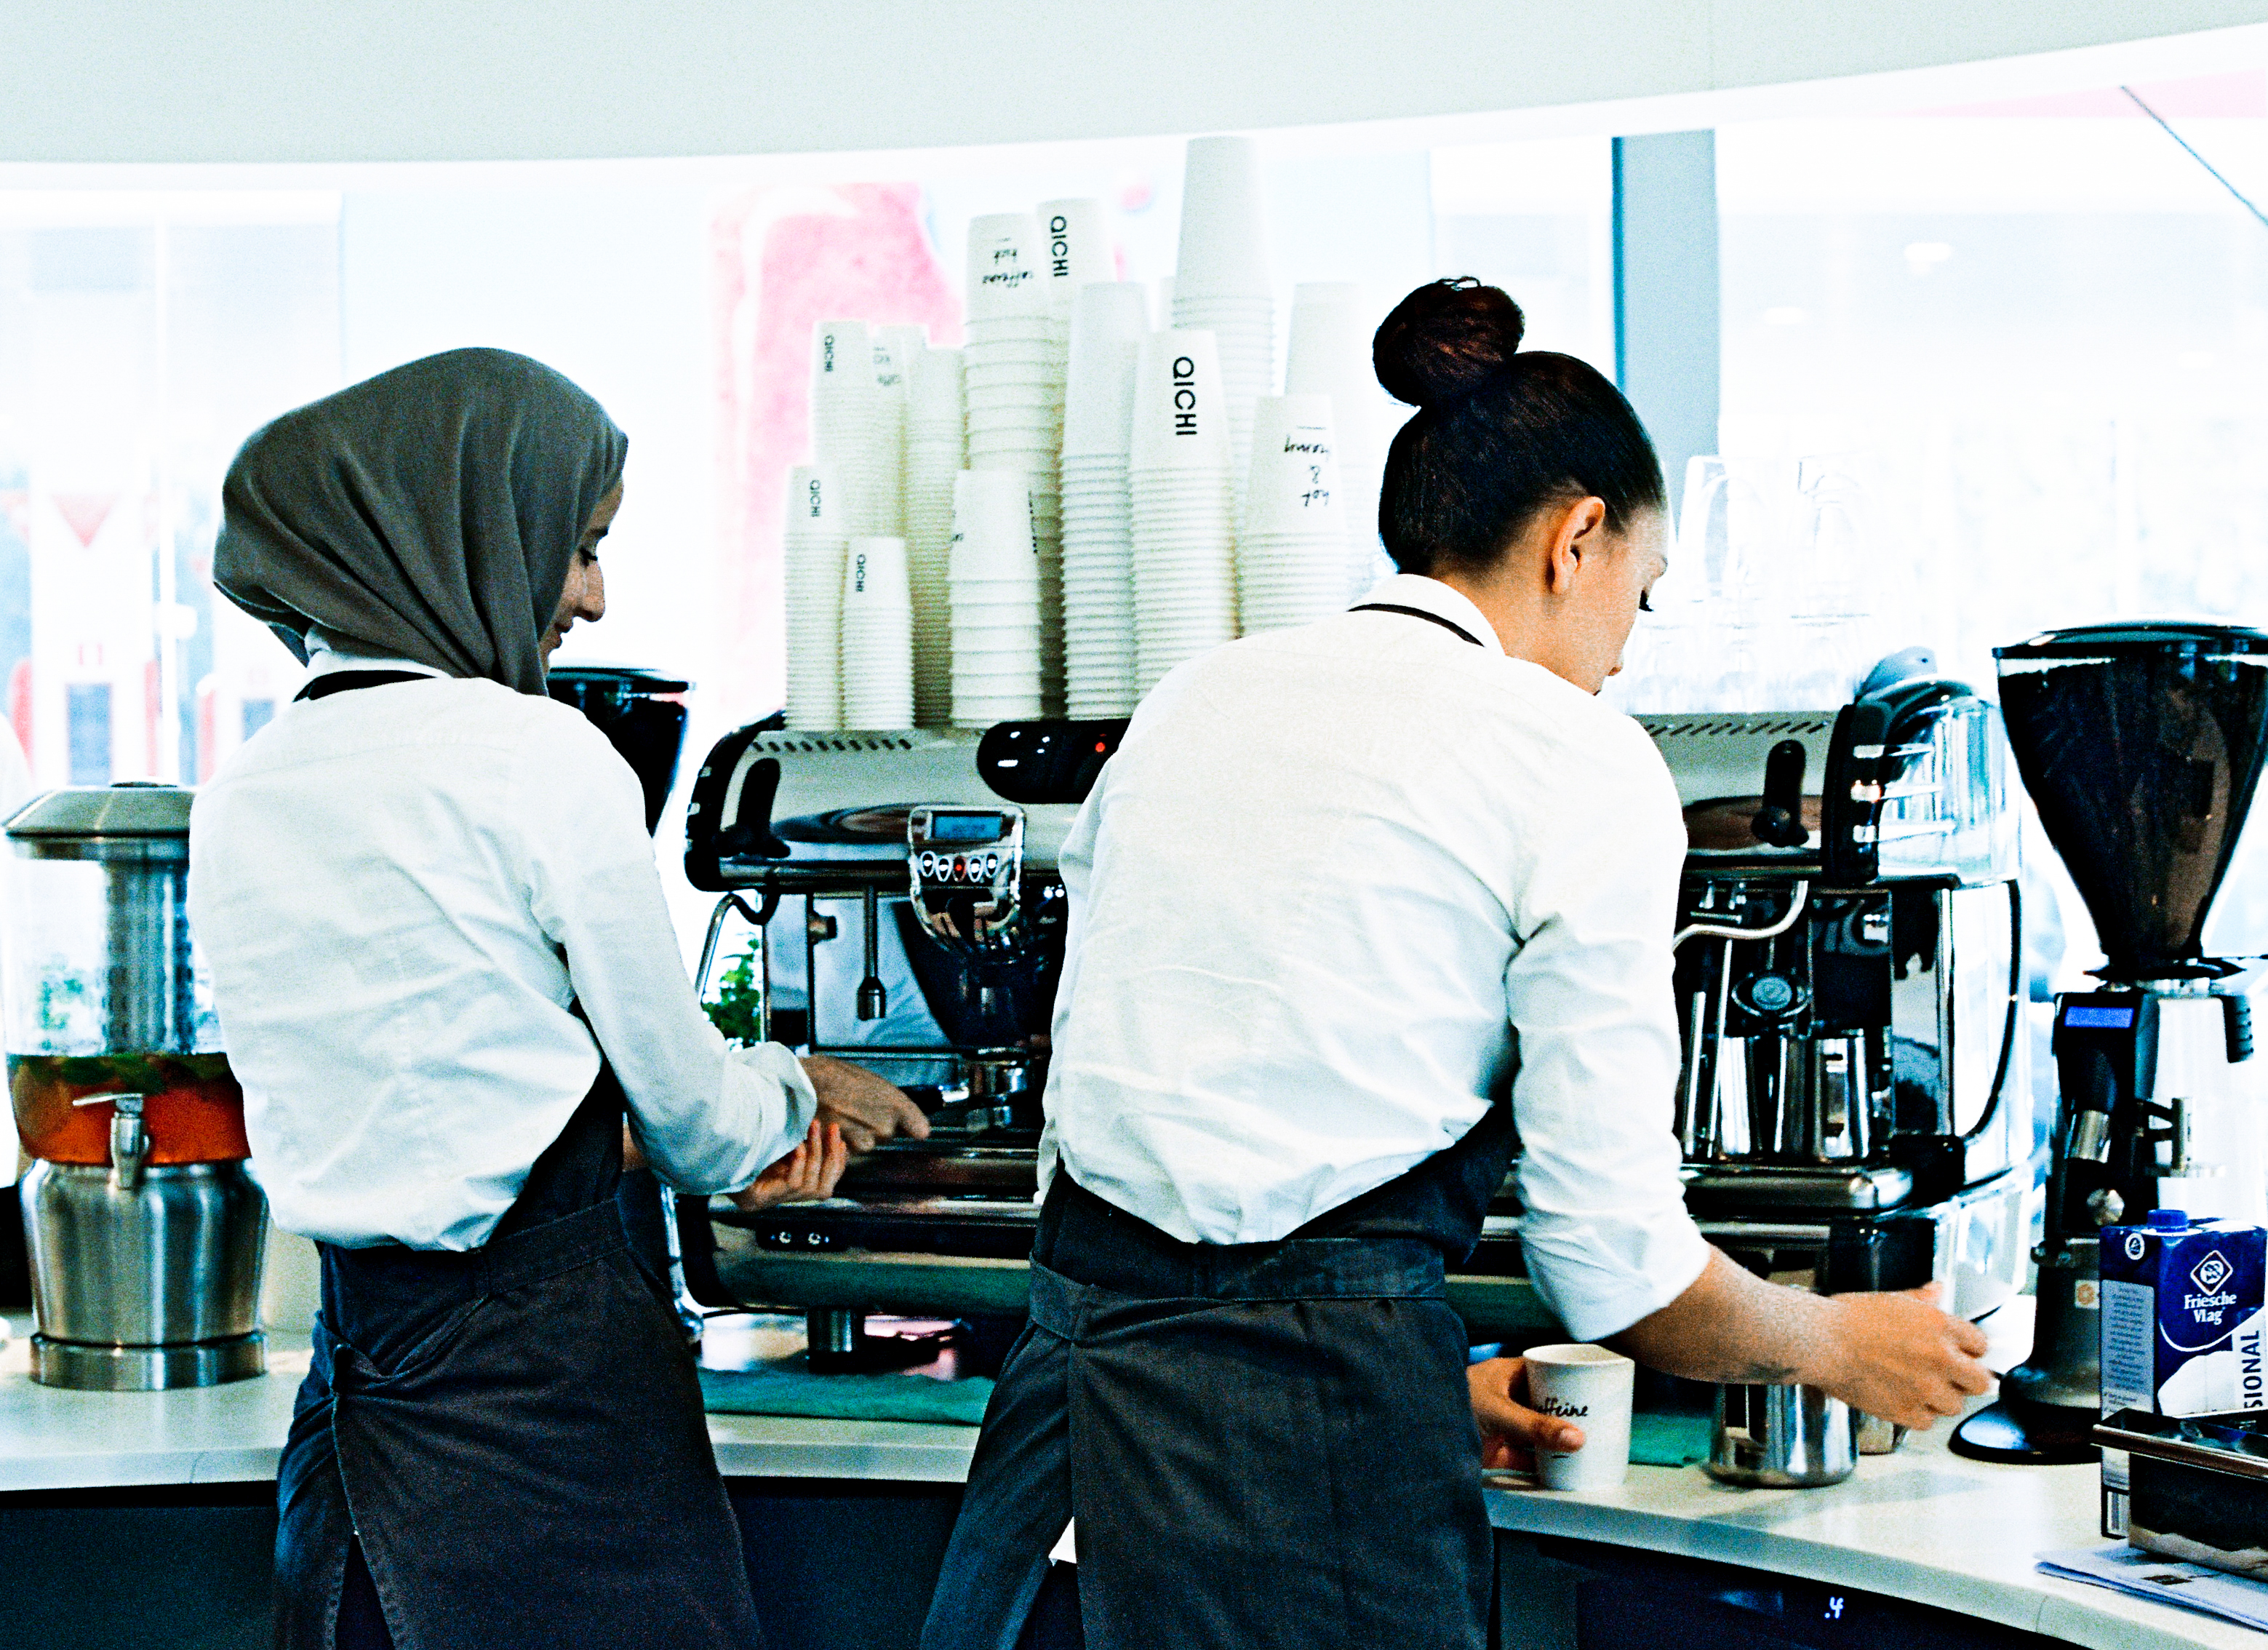 Two girls working in cafe